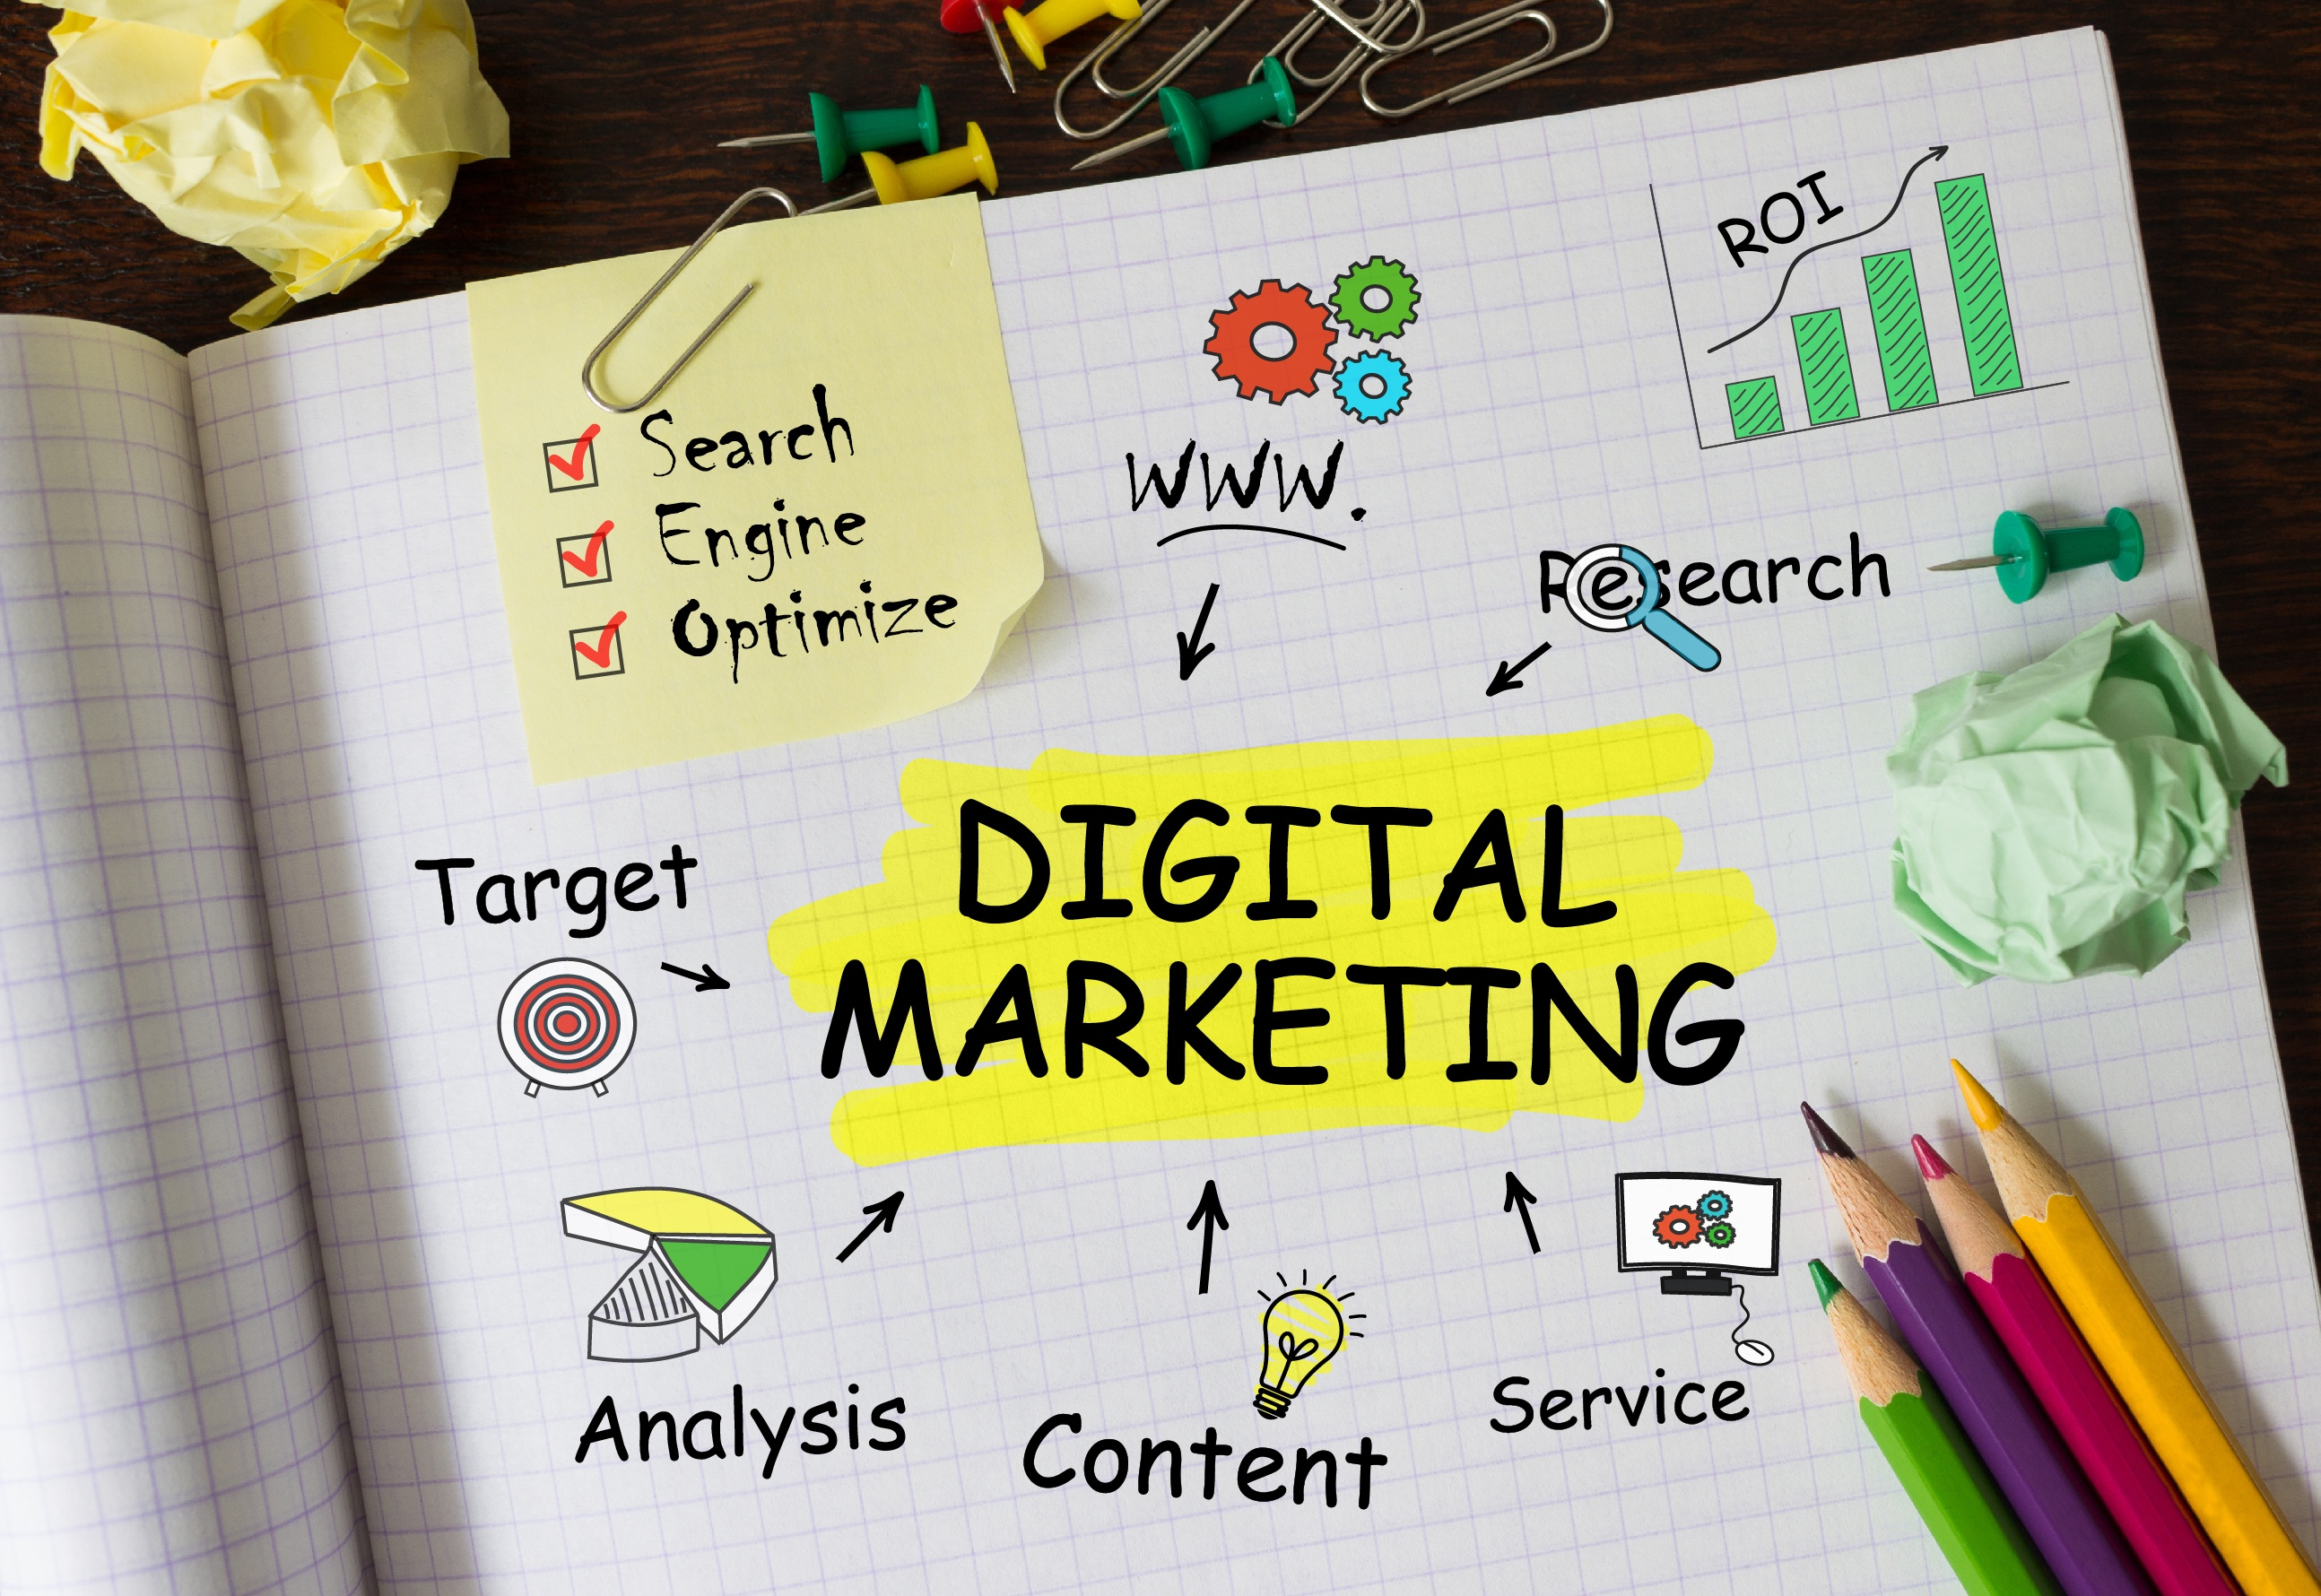 Notebook-with-Tools-and-Notes-about-Digital-Marketing-000085280953_Medium.jpg